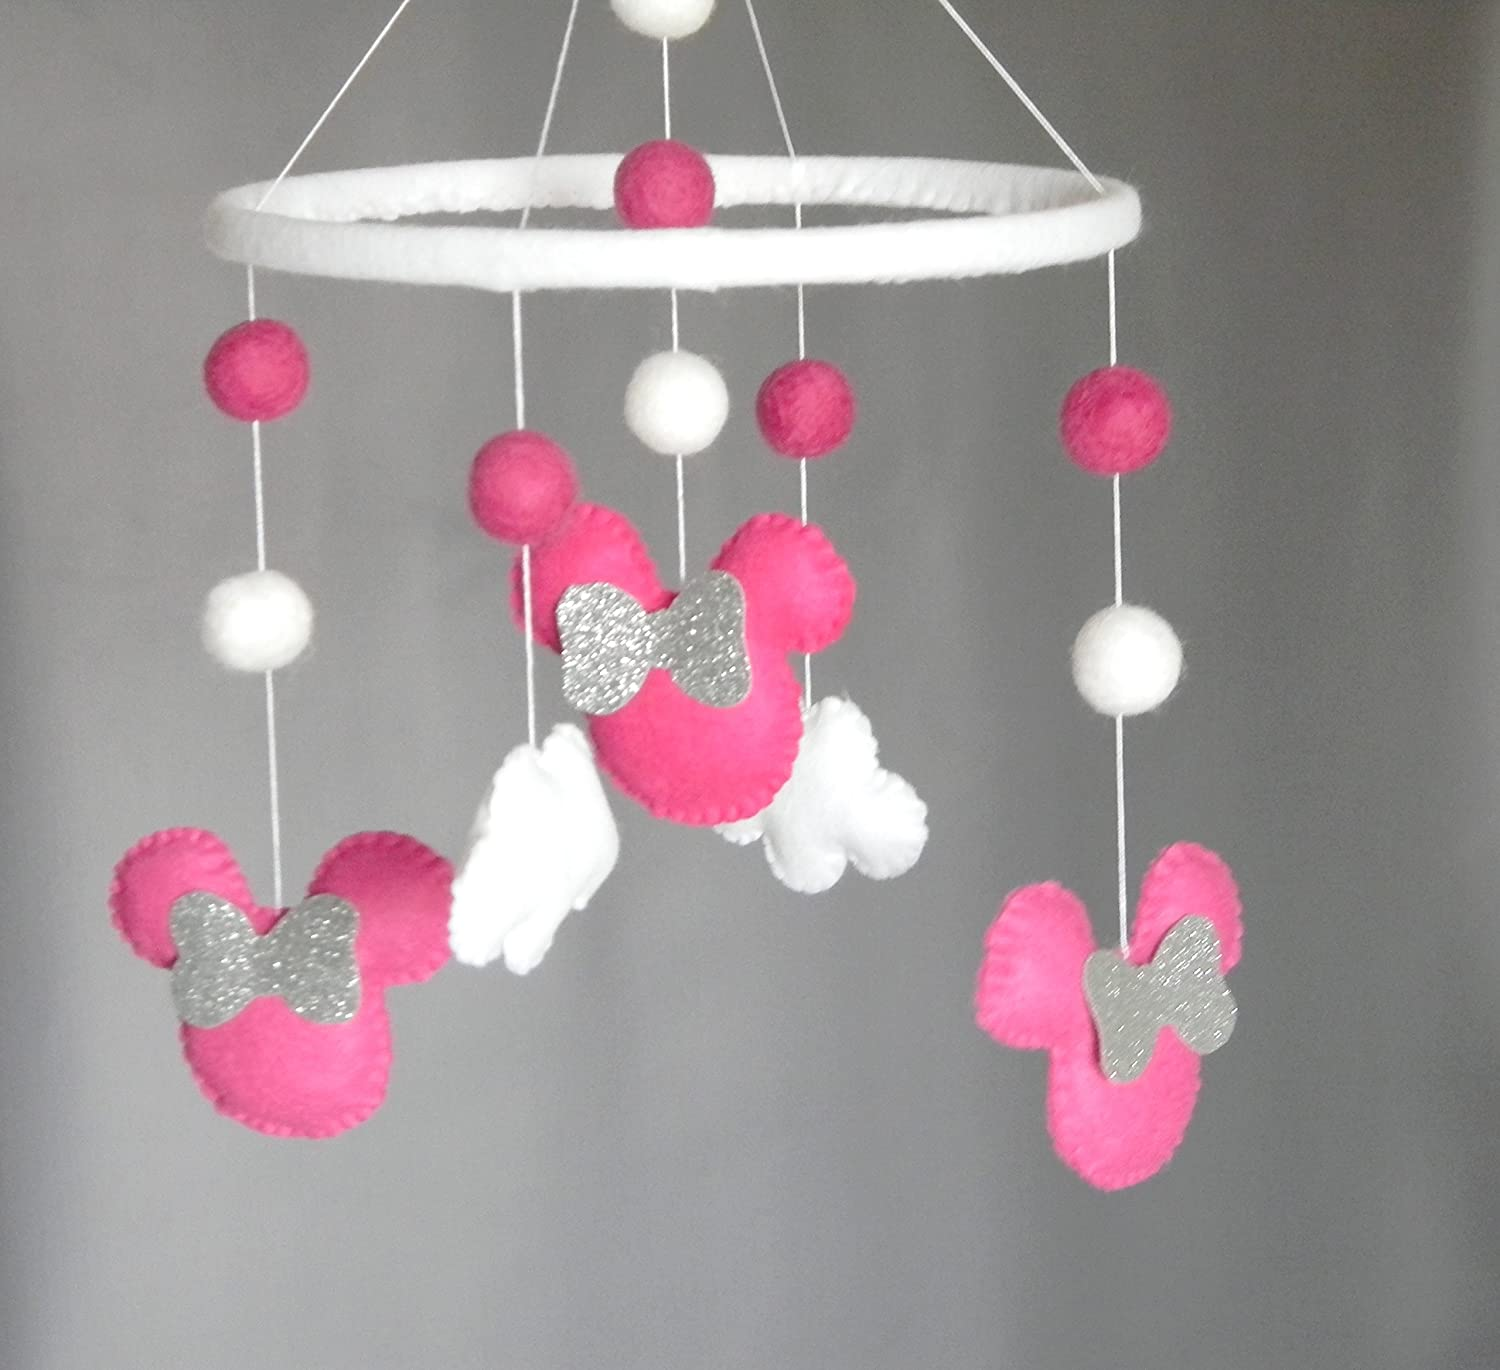 Amazoncom Disney Inspired Minnie Mouse Baby Mobile Baby Crib Mobile Modern